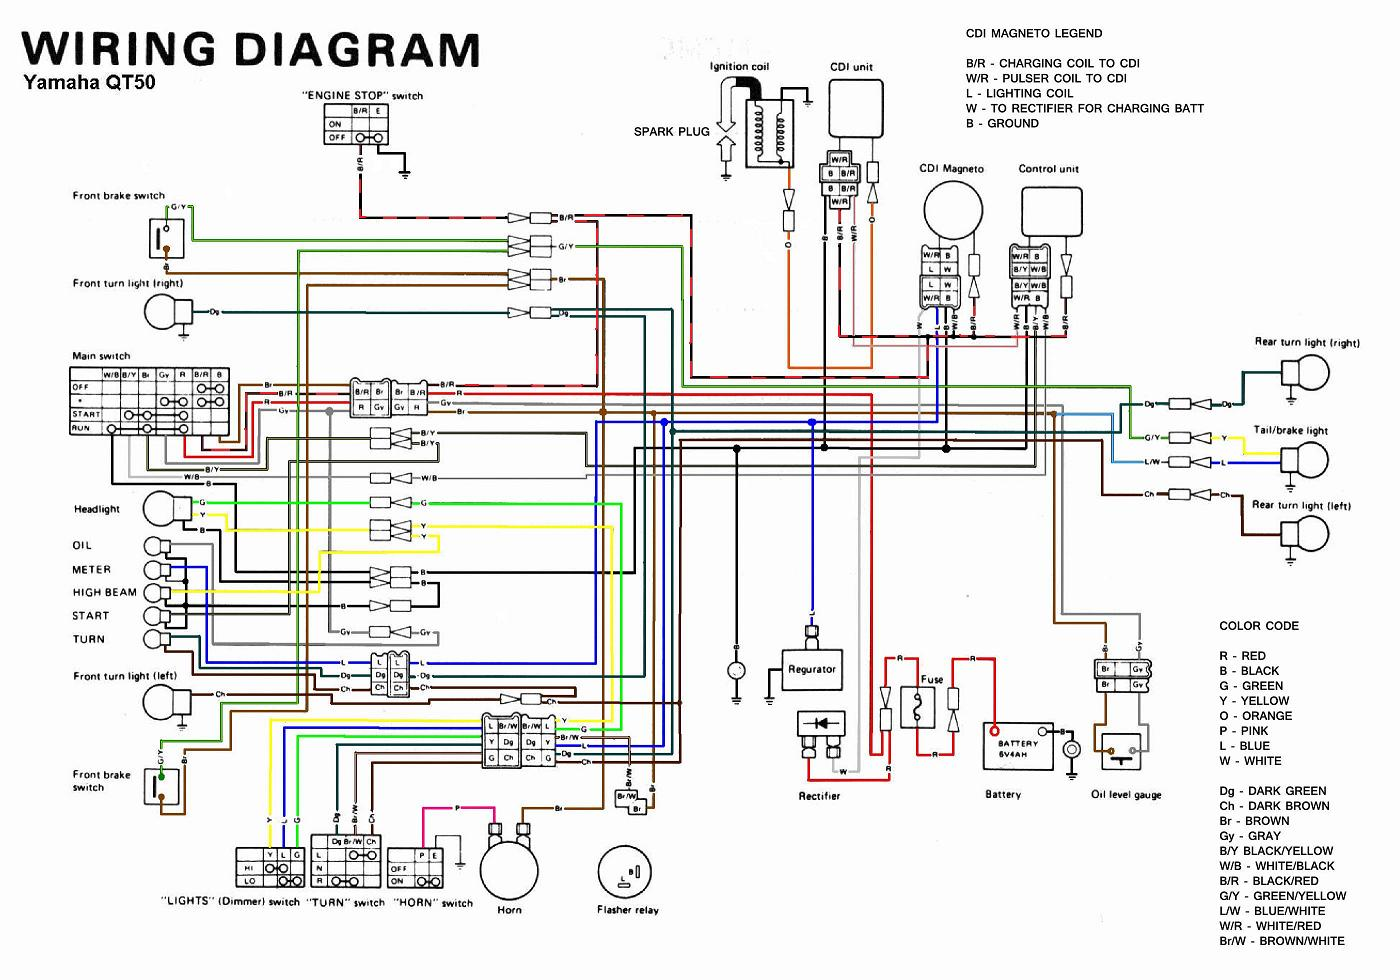 polaris atv wiring schematic with Yamaha Qt50 Wiring Diagram on Hisun Atv Wiring Diagram also 1994 Polaris Indy 500 Efi Wiring Diagram further Este Cdi Es Alimentado Por Bateria O Estator also Polaris Explorer 300 Engine Diagram together with Wiring diagrams.